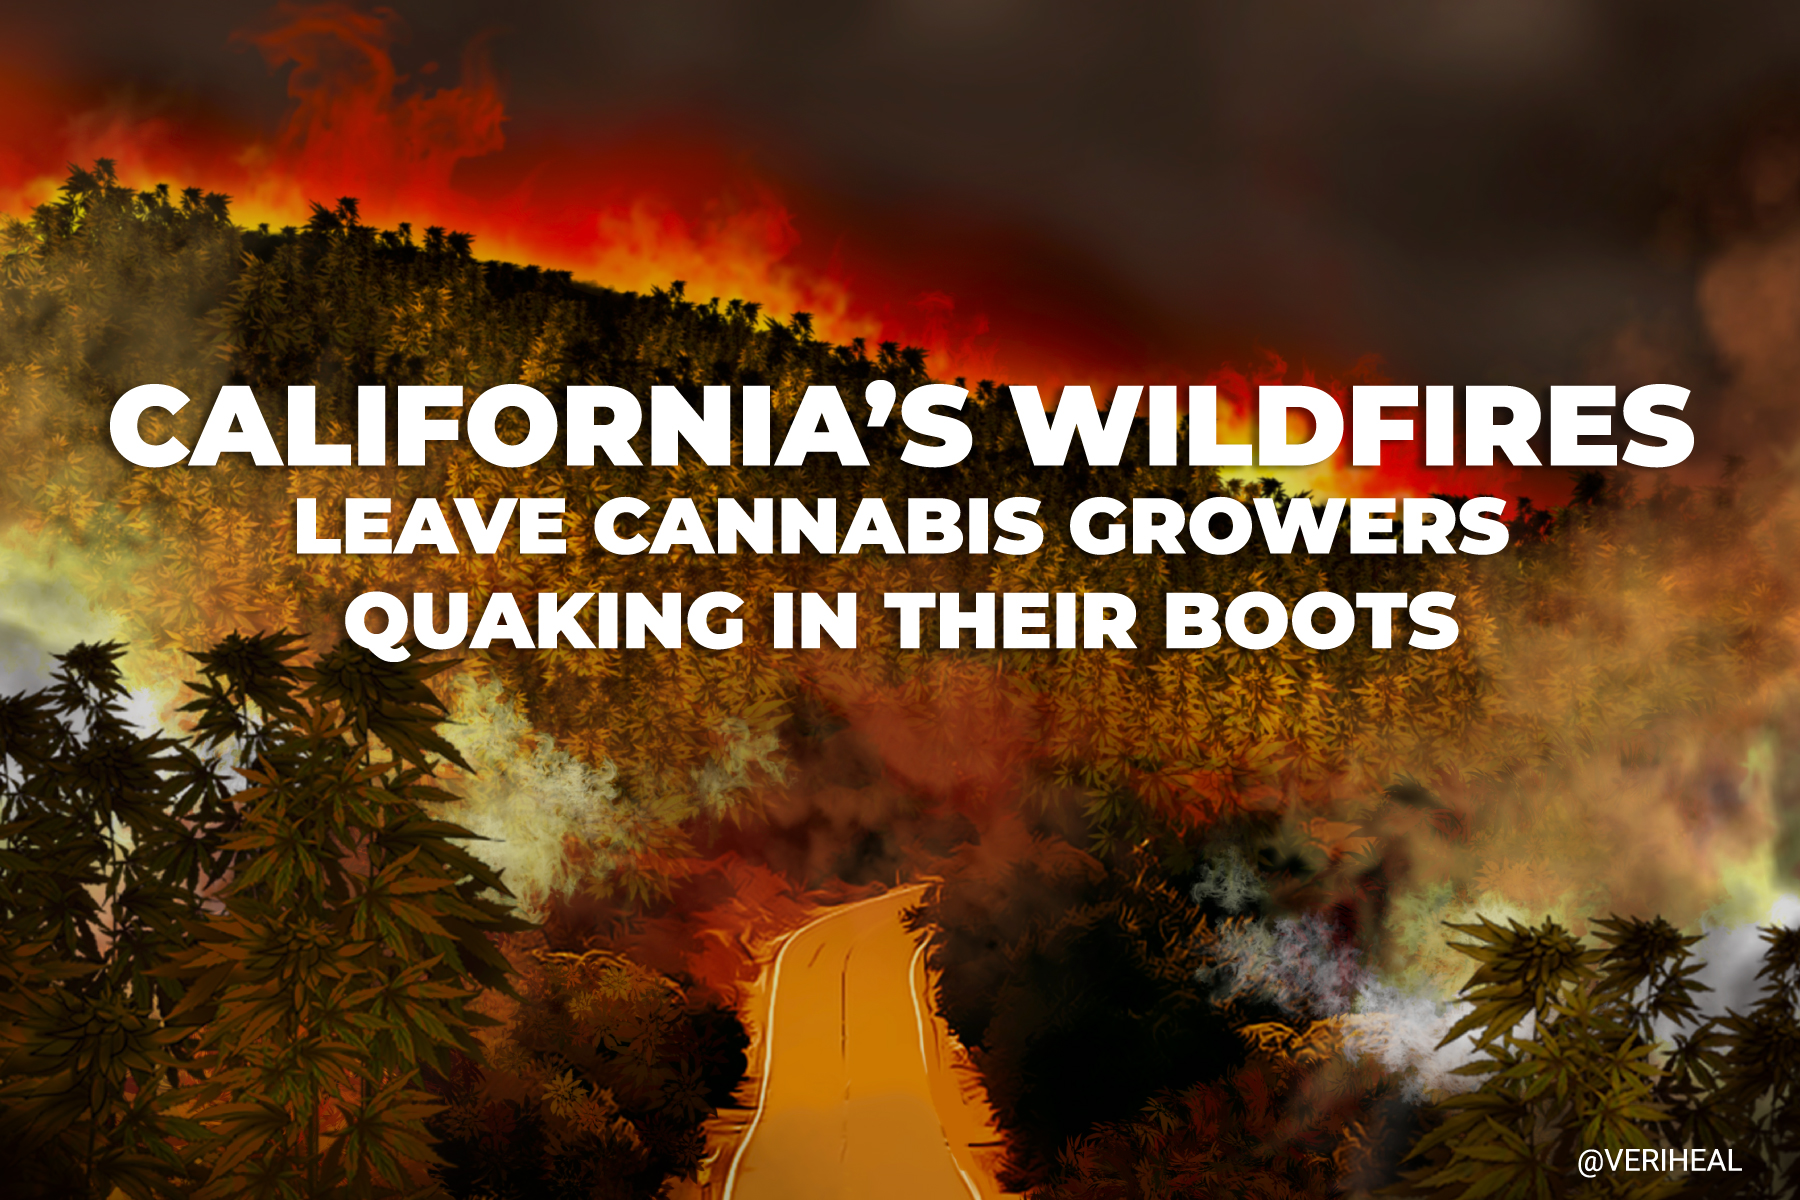 California Wildfires Leave Cannabis Growers Quaking in their Boots